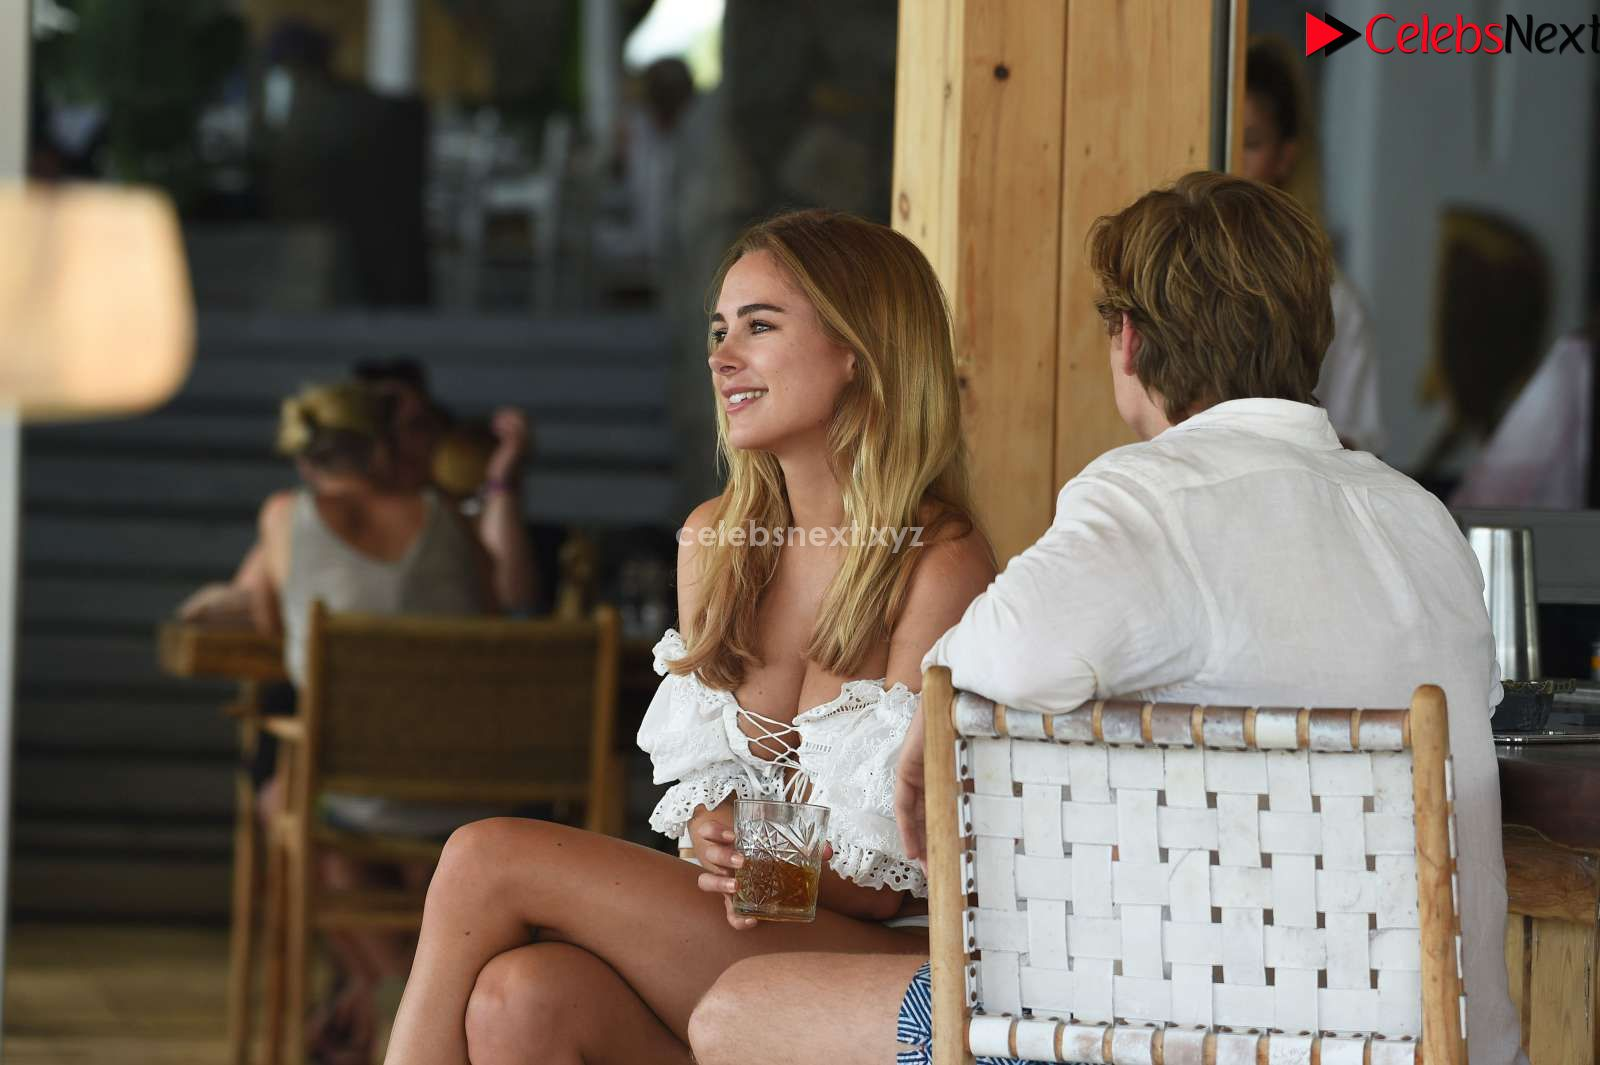 Kimberly Garner Booty Sexy Upskirt Lovely Bikin Hot boobs Smooth Ertoic Ass - July 2018 ~ CelebrityBooty.co Exclusive Celebrity Pics